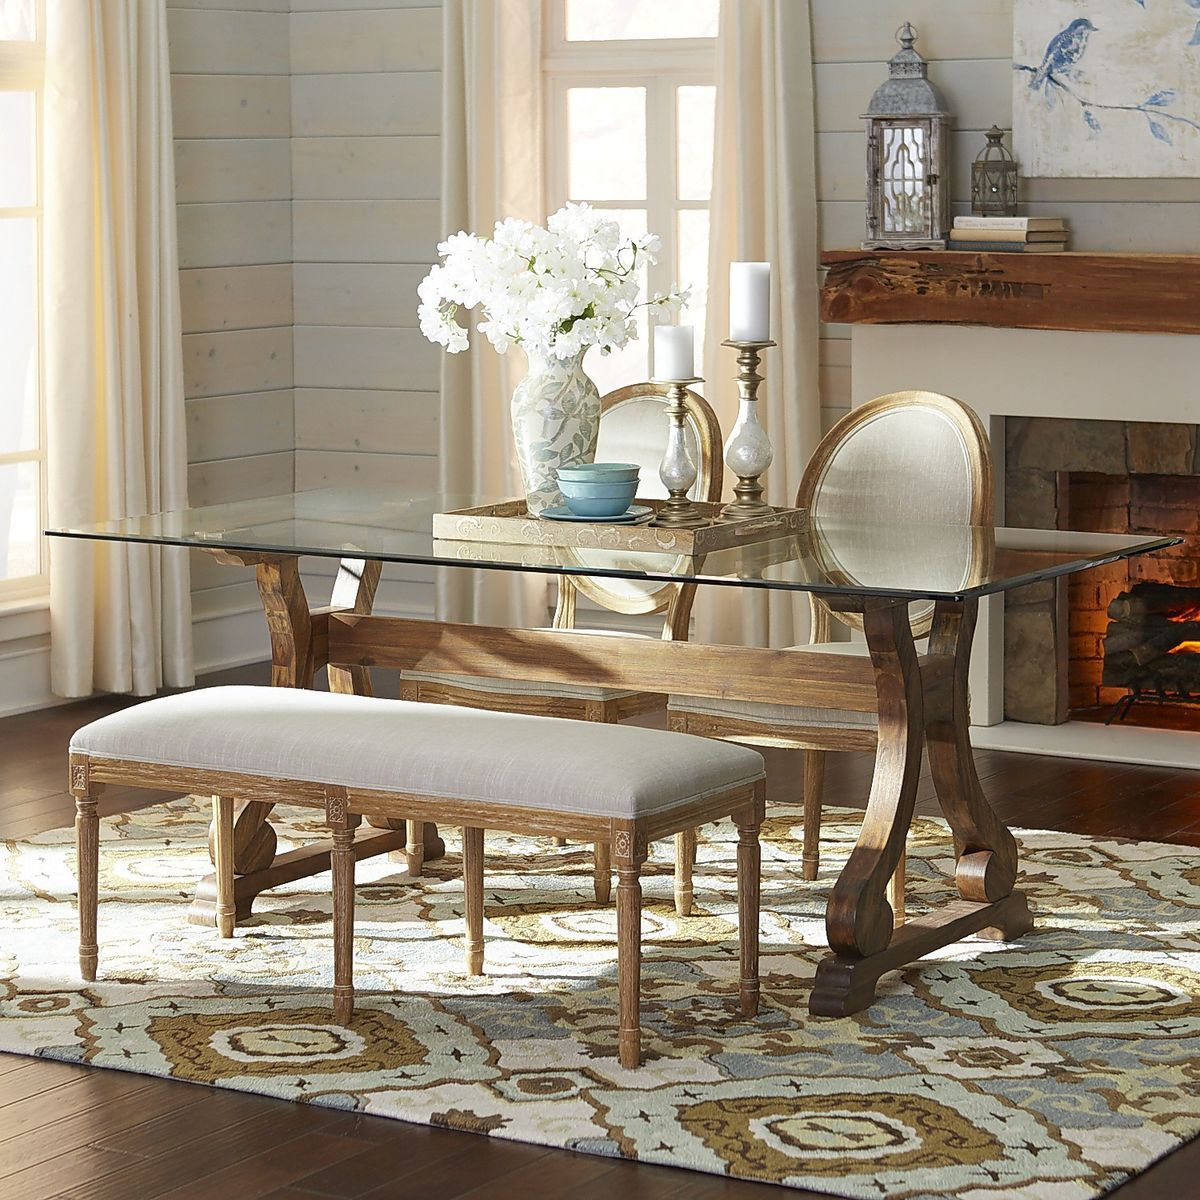 Beau Marchella Glass Table Top Dining Set | Pier 1 Imports